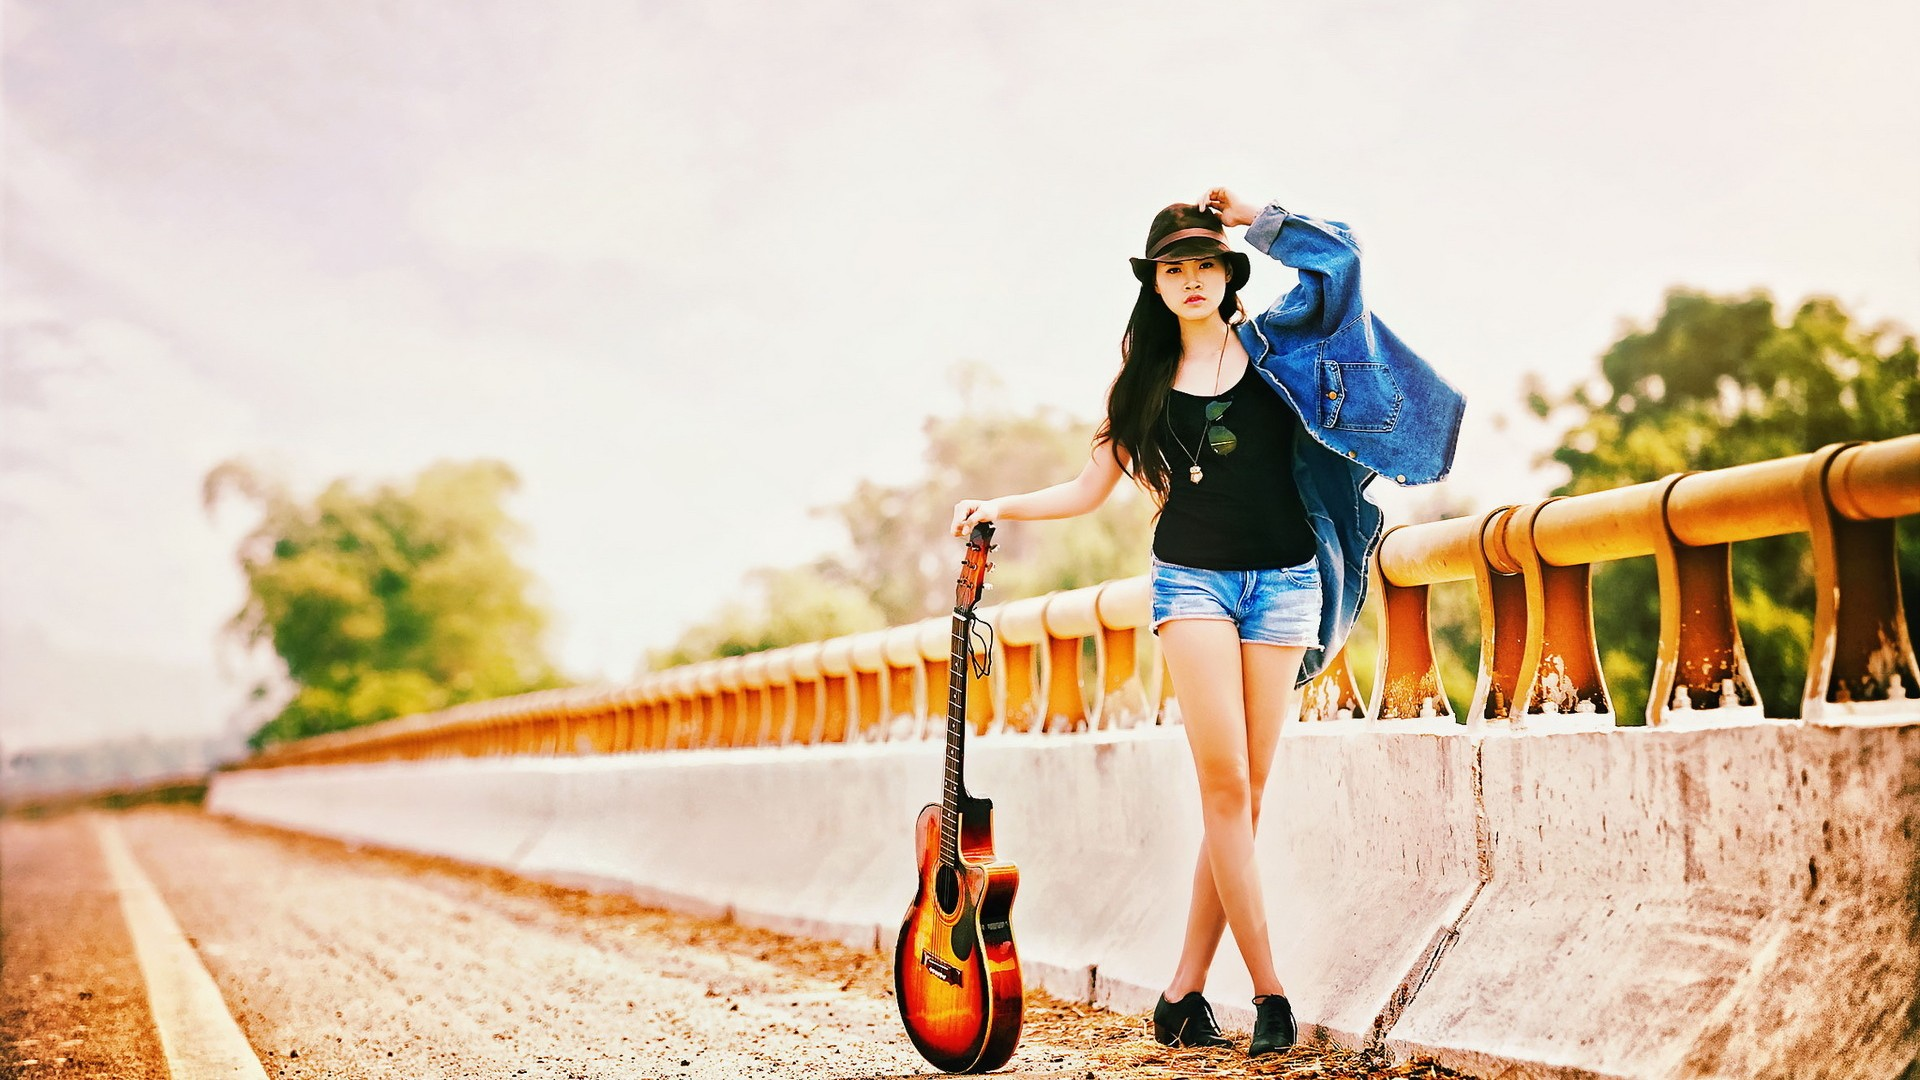 Guitar Girl - Wallpaper, High Definition, High Quality ...